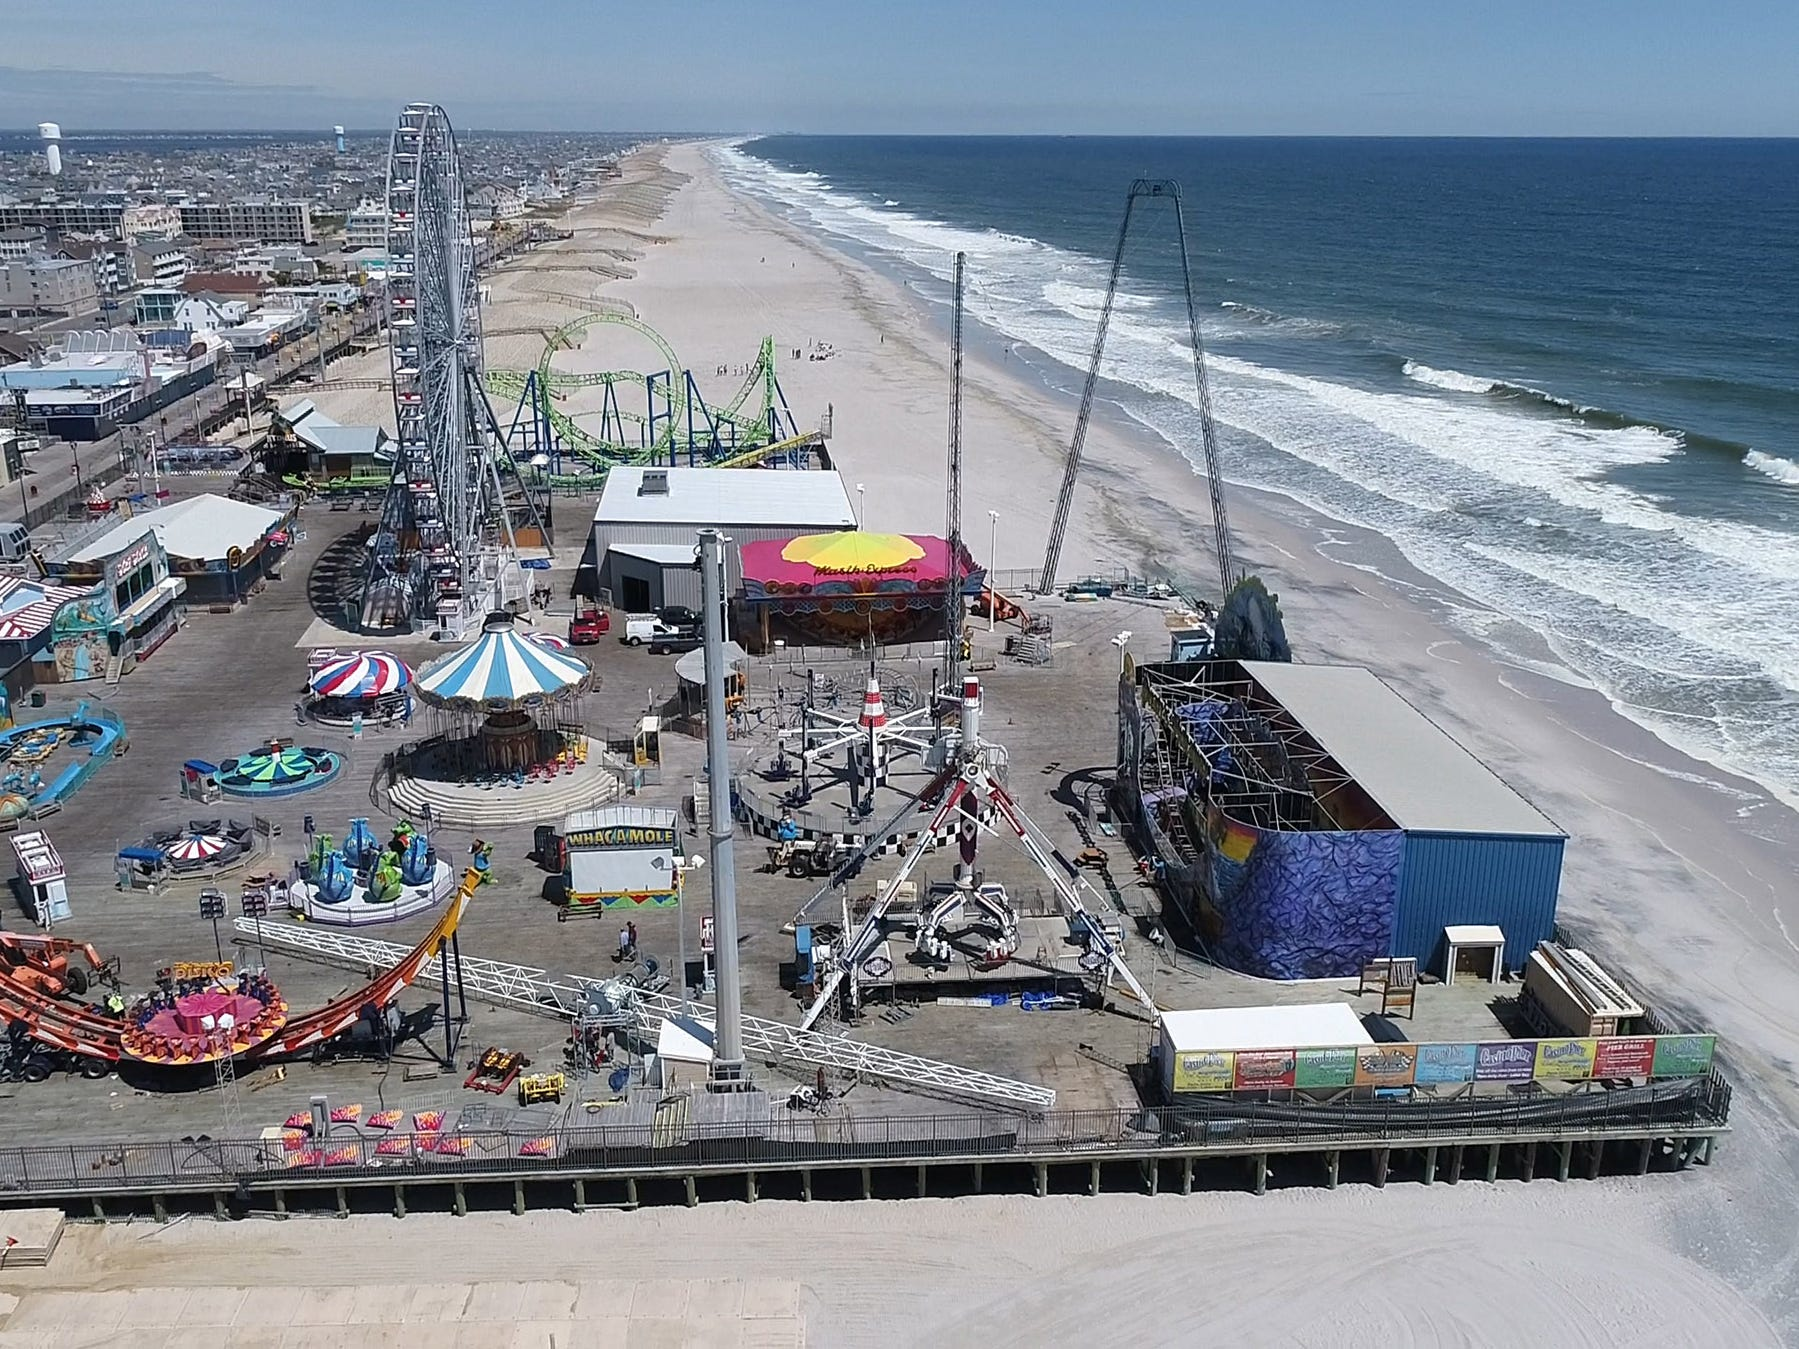 Rides are prepared for the summer season on Seaside Heights' Casino Pier Monday, May 6, 2019.